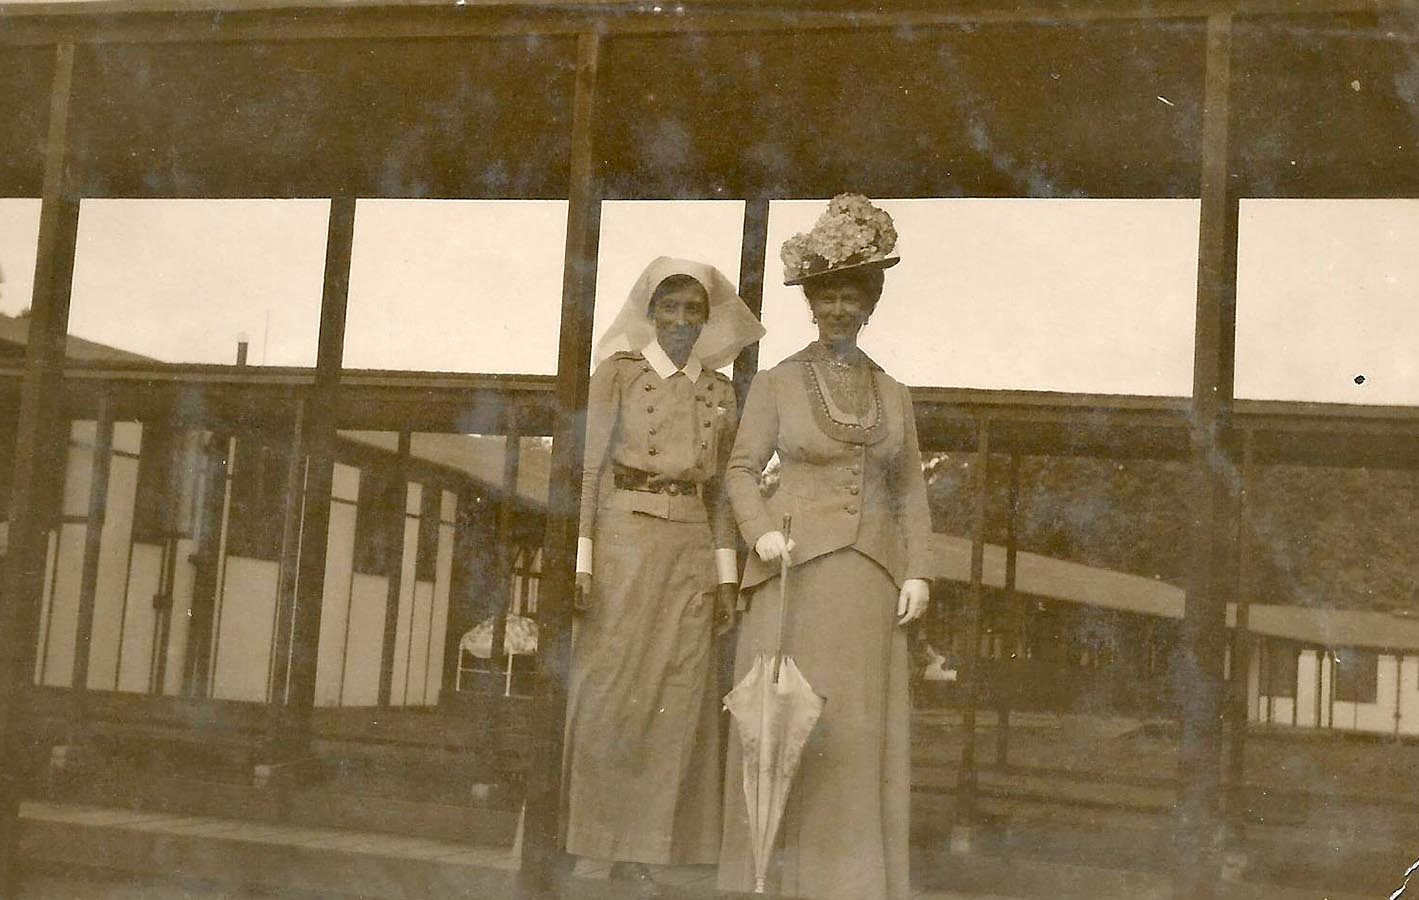 Matron Edith Campbell pictured with Queen Mary, consort of King George V, at the Duchess of Connaught Canadian Red Cross Hospital in England around 1916. Photo: Provided by Gordon McDermid, Friends of the Canadian War Museum.